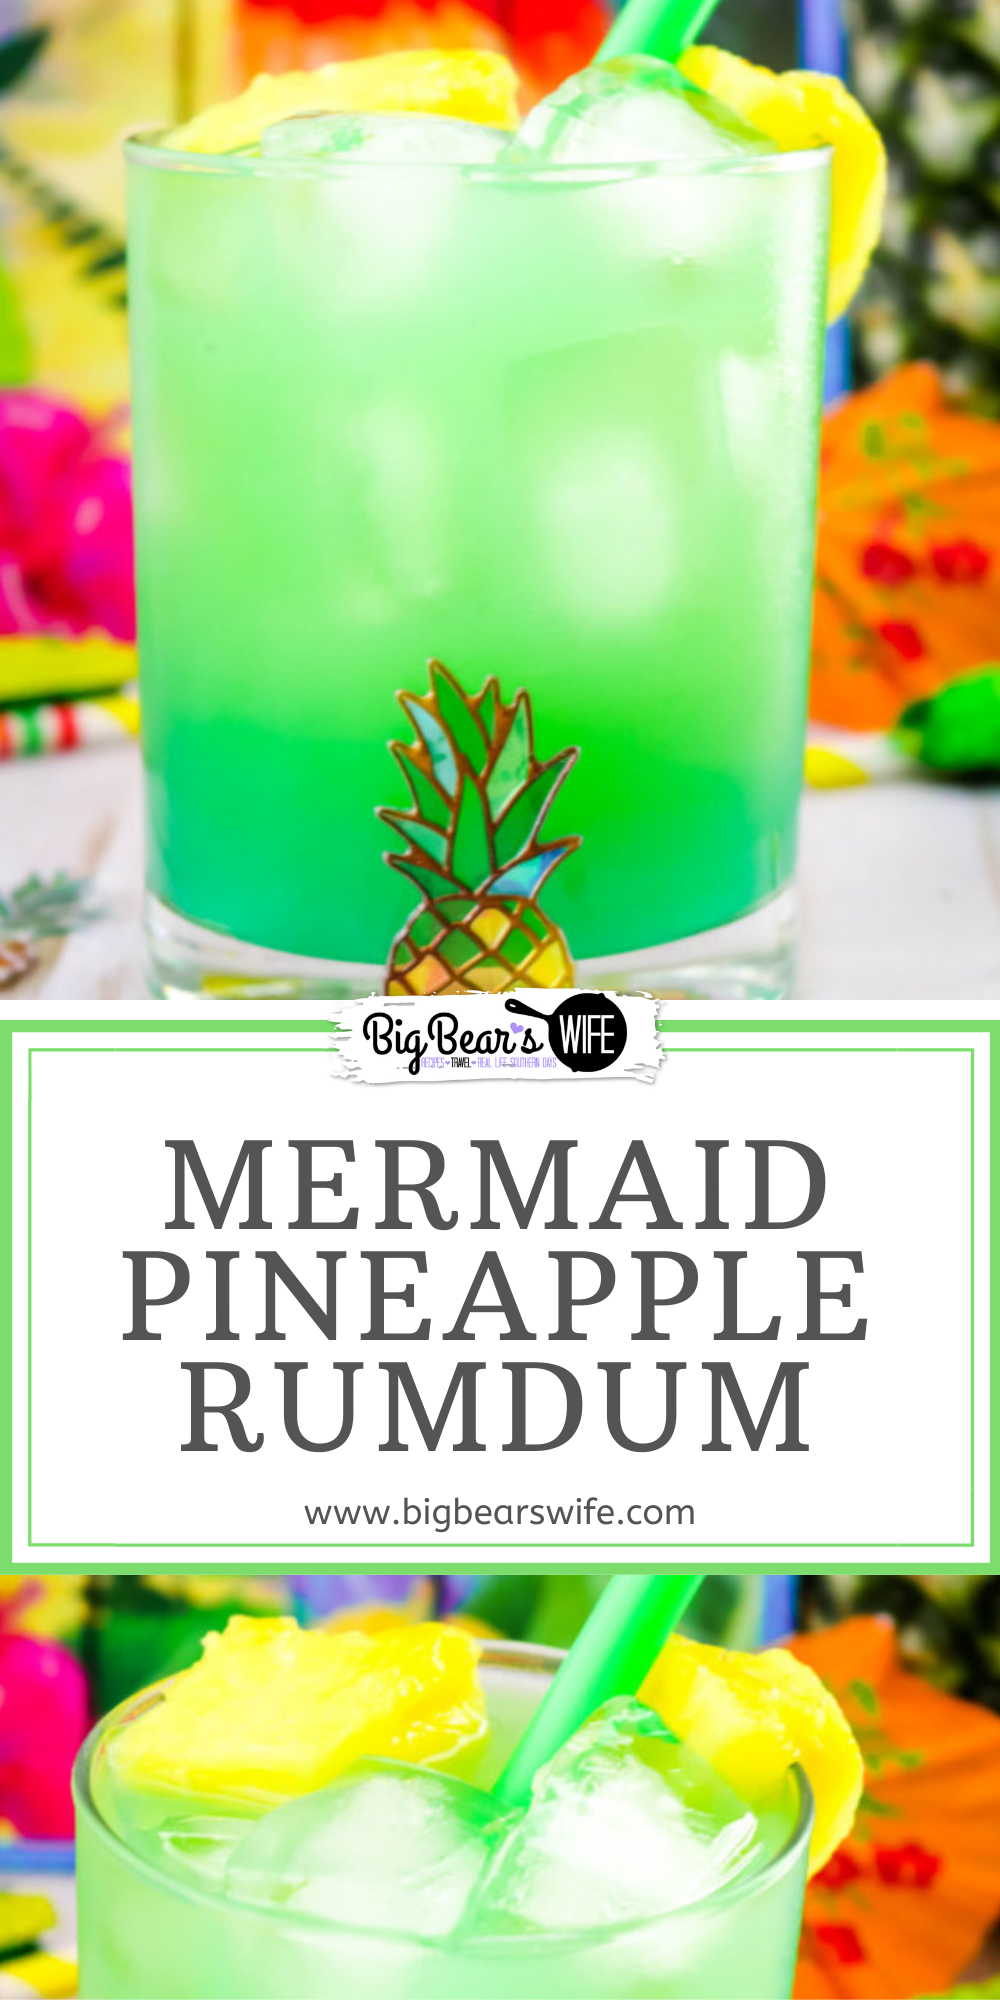 This Mermaid Pineapple RumDum will make you feel like you're hanging out on the beach and after a few you might feel like you're swimming with mermaids! It's got pineapple rum and vanilla rum mixed plus it's topped with extra pineapple! For an extra kick, soak the pineapple pieces in rum for a few days beforehand!    via @bigbearswife